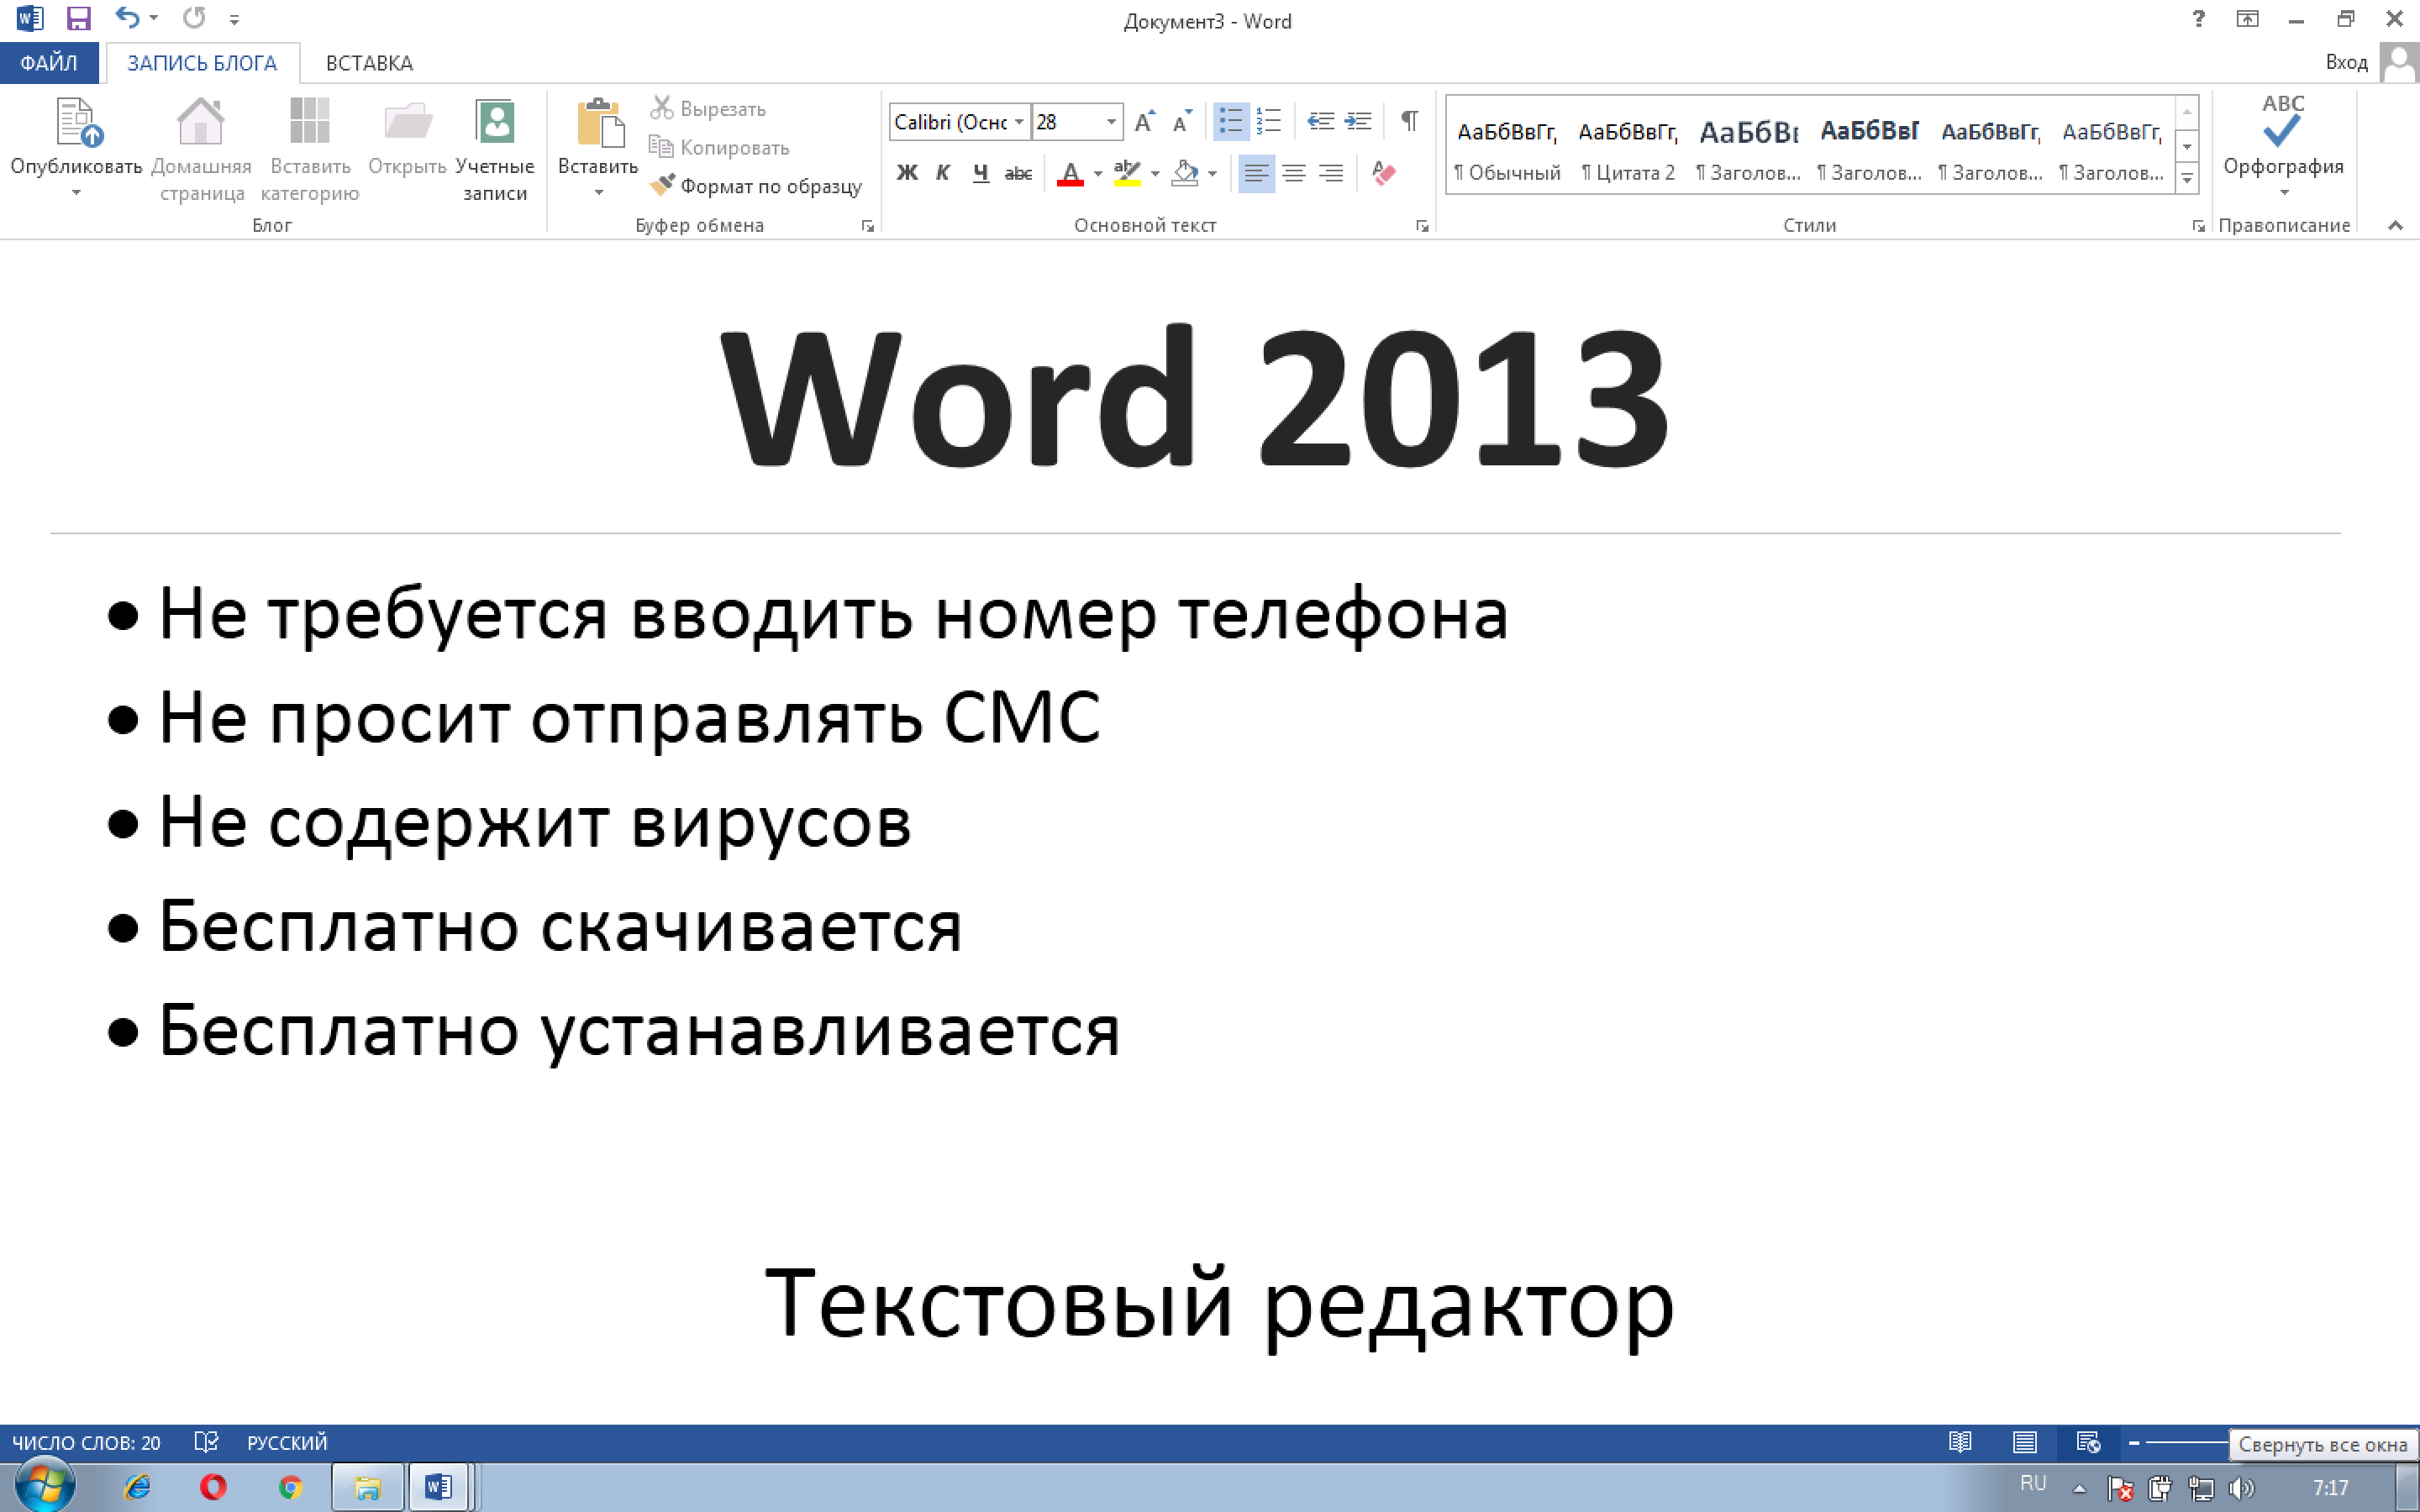 Microsoft office 2013 torrent repack версия standard на русском.